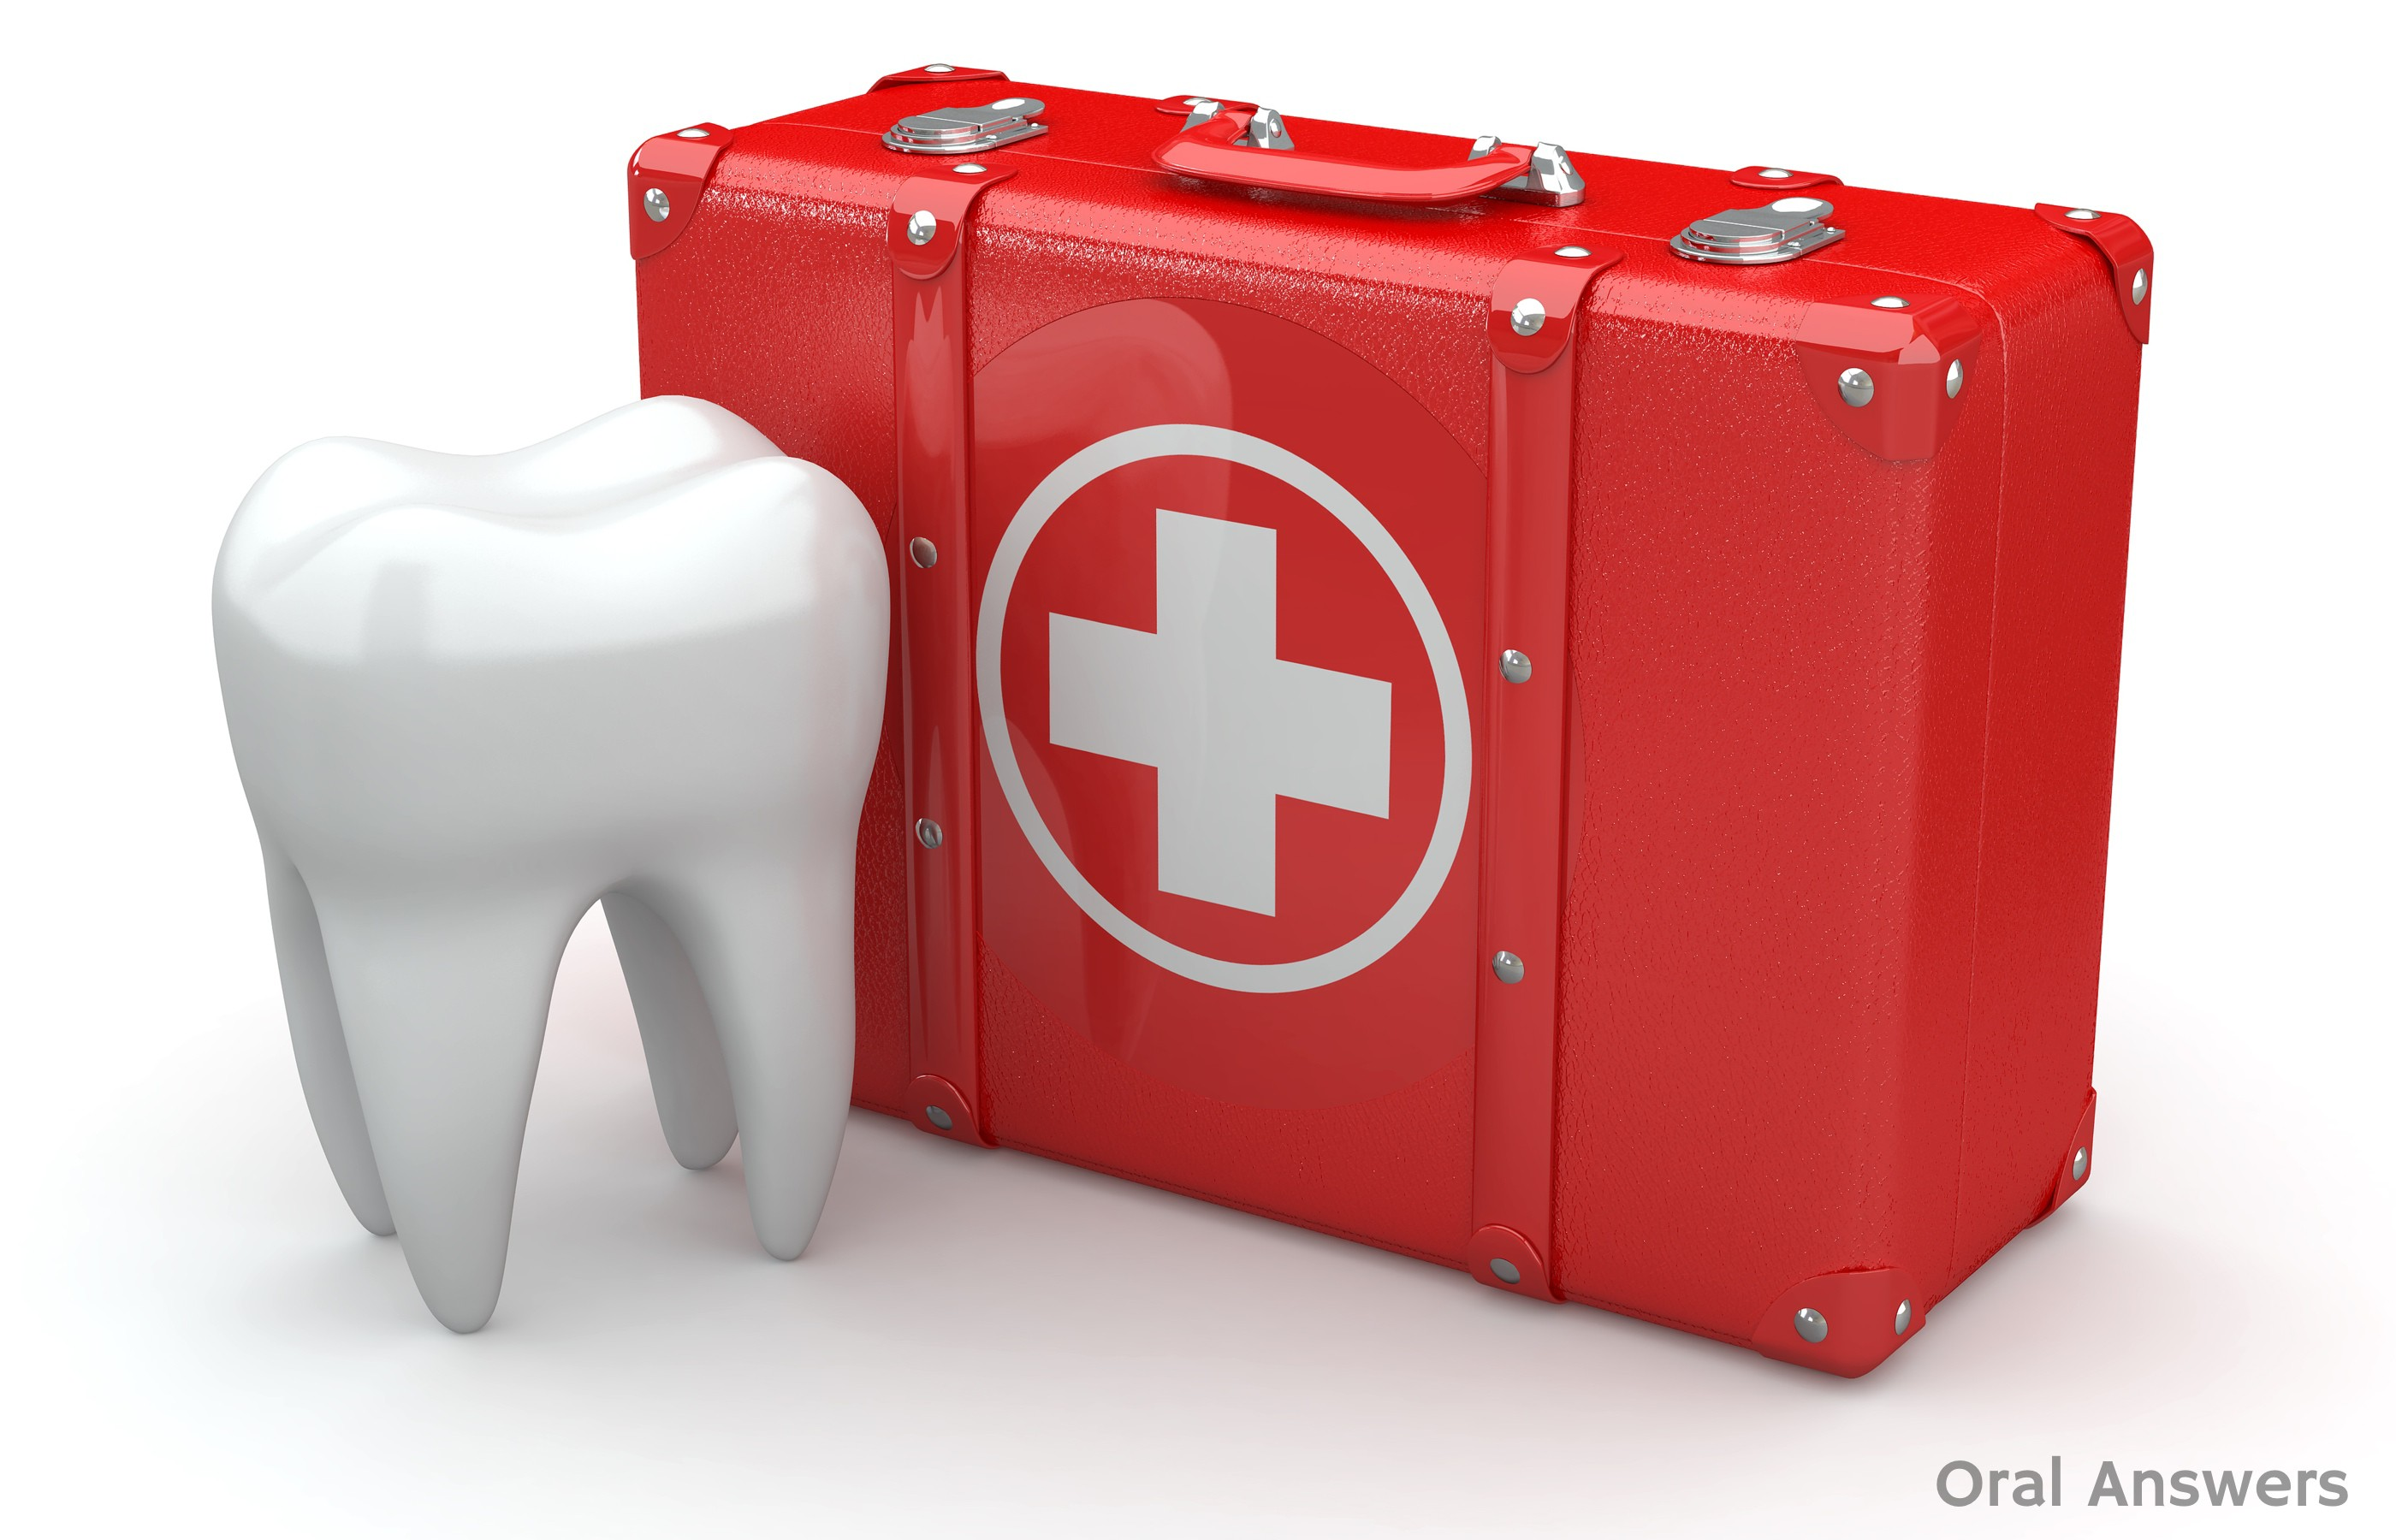 How to Make Your Own Dental First Aid Kit